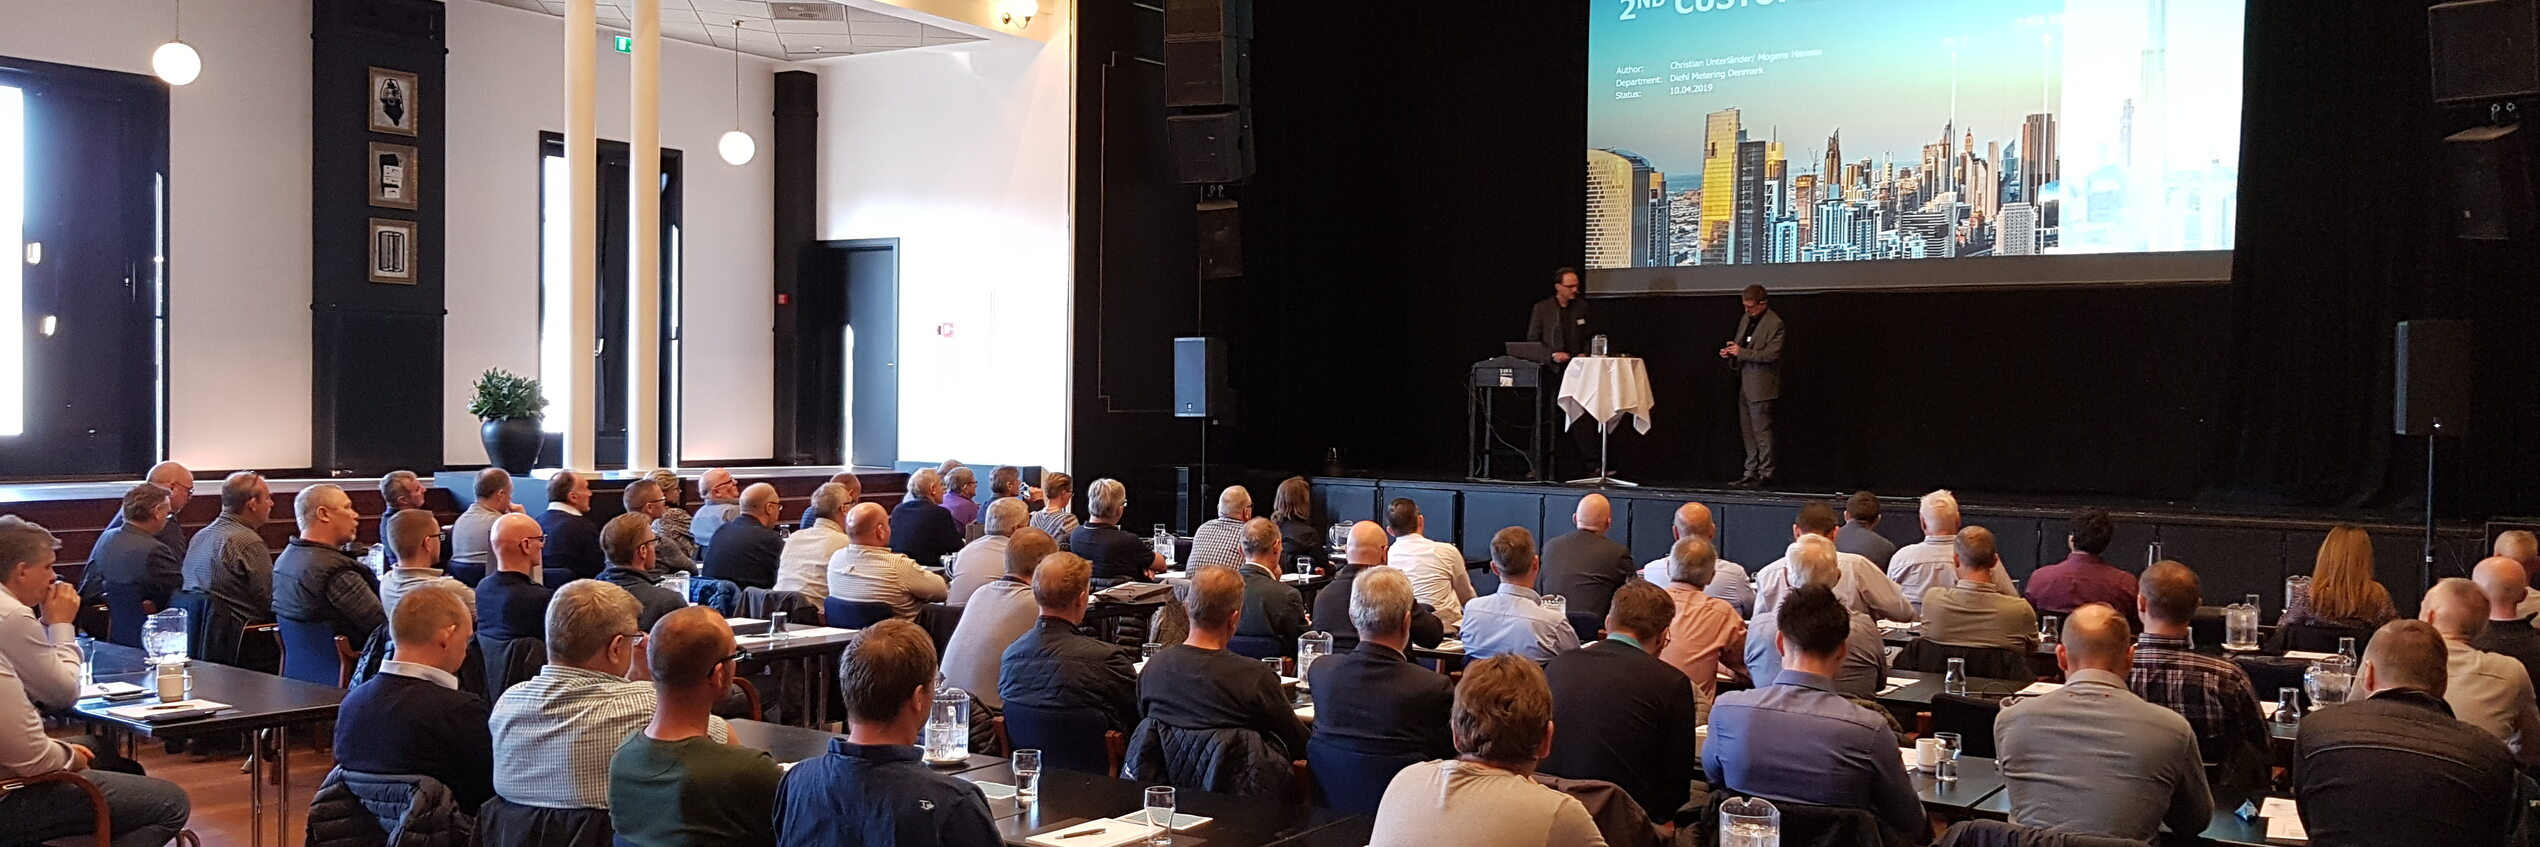 Diehl Metering Customer Day: Second edition of our in-house exhibition in Denmark